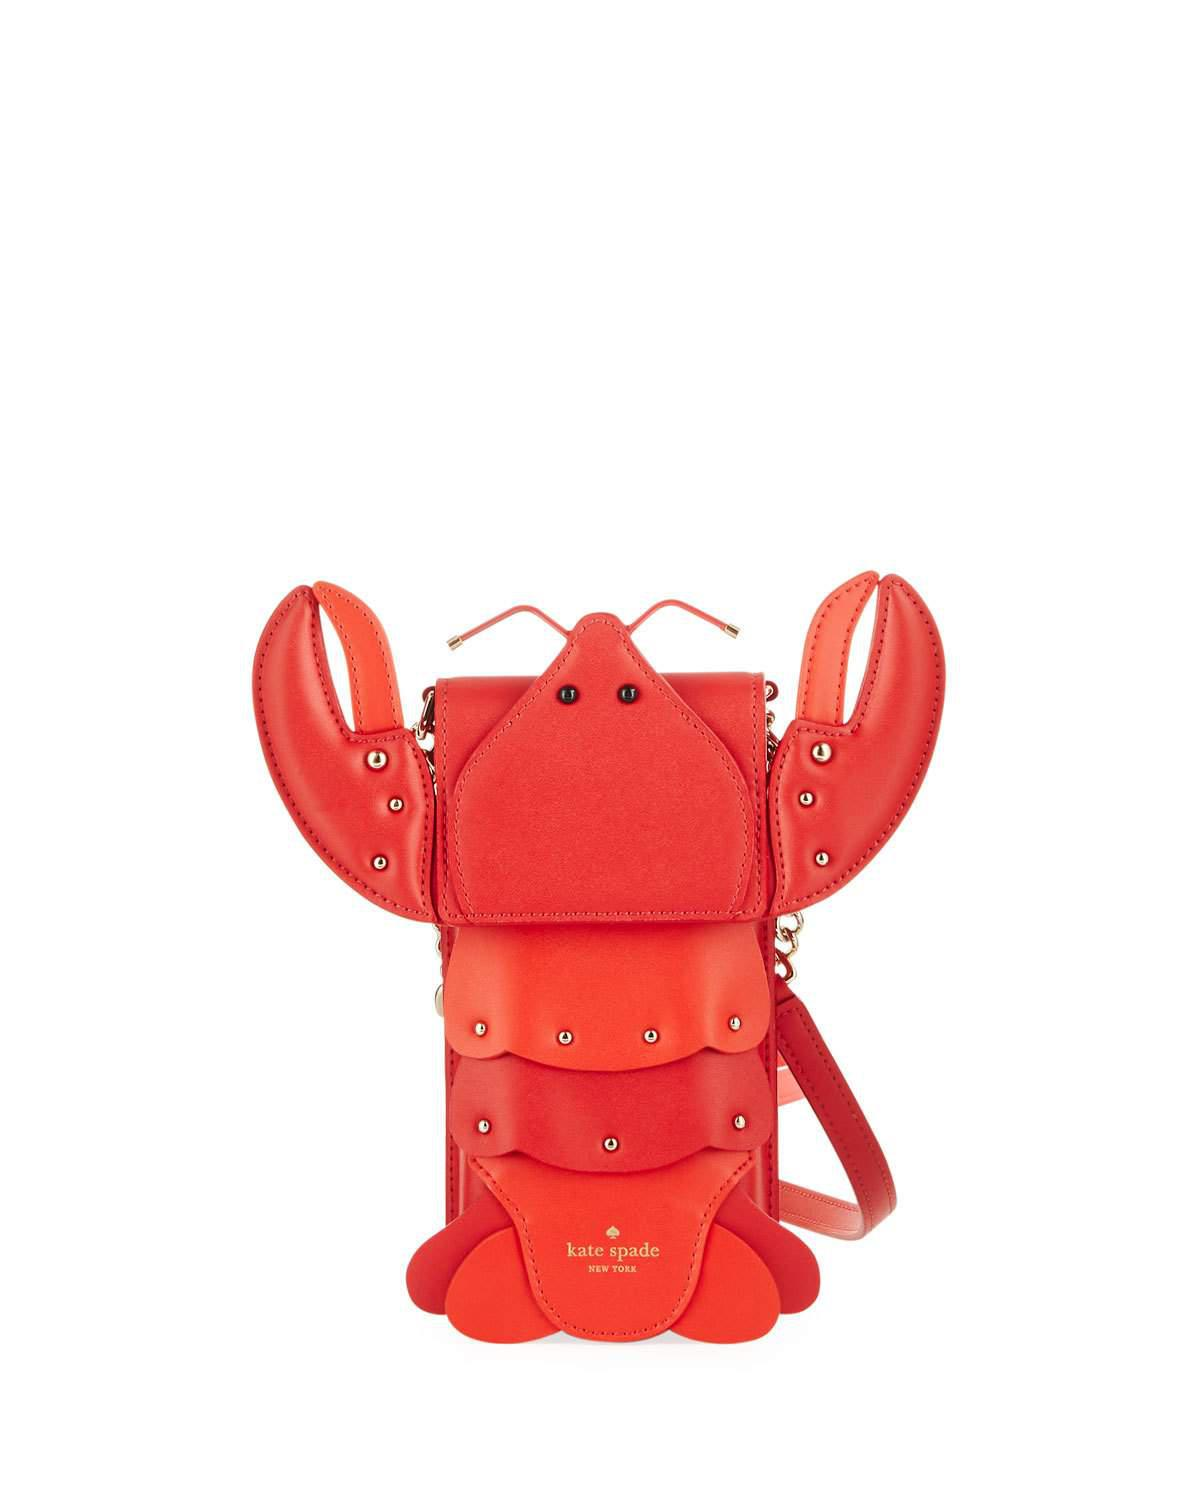 finest selection d7d6a e52b5 Kate Spade Red Lobster North/south Phone Crossbody Bag